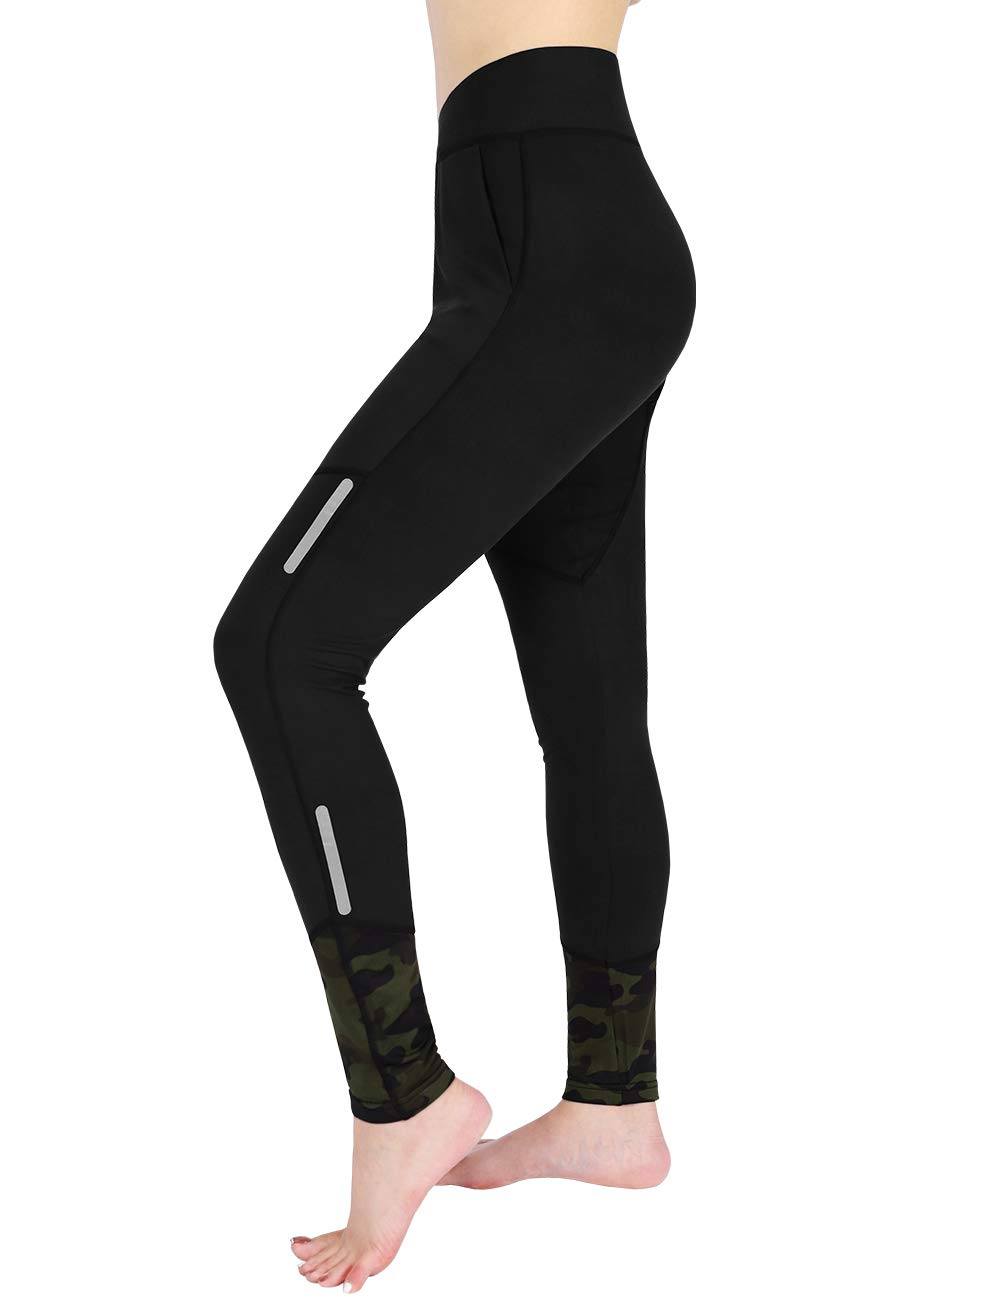 DISHANG Women's Fleece Lined Yoga Leggings with Pockets Winter Workout Running Pants with Camouflage Element